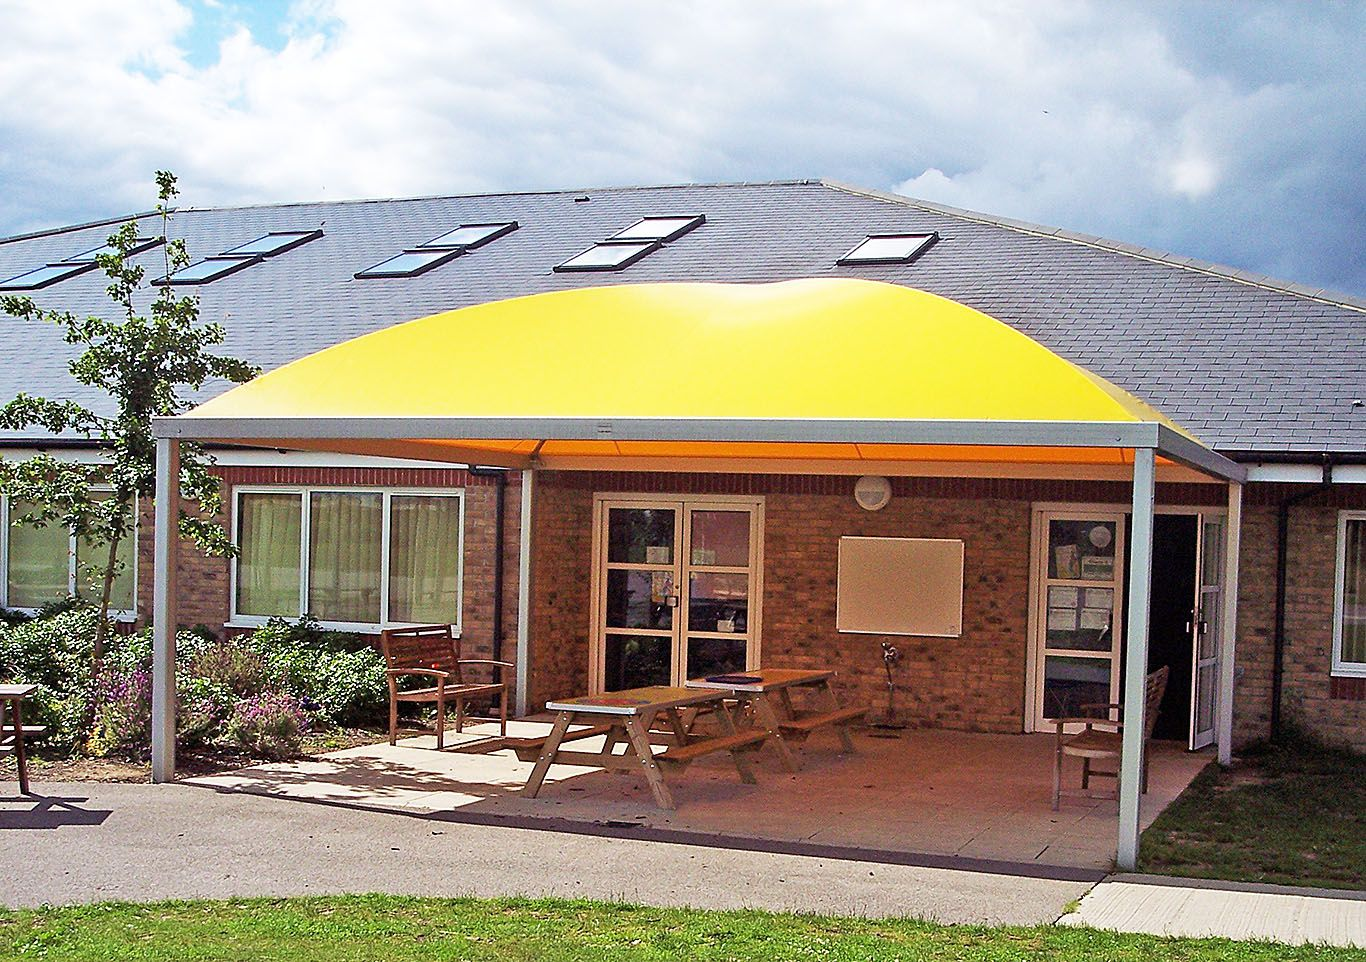 Yellow Cube canopy providing shade and shelter for a school's outdoor seating area.